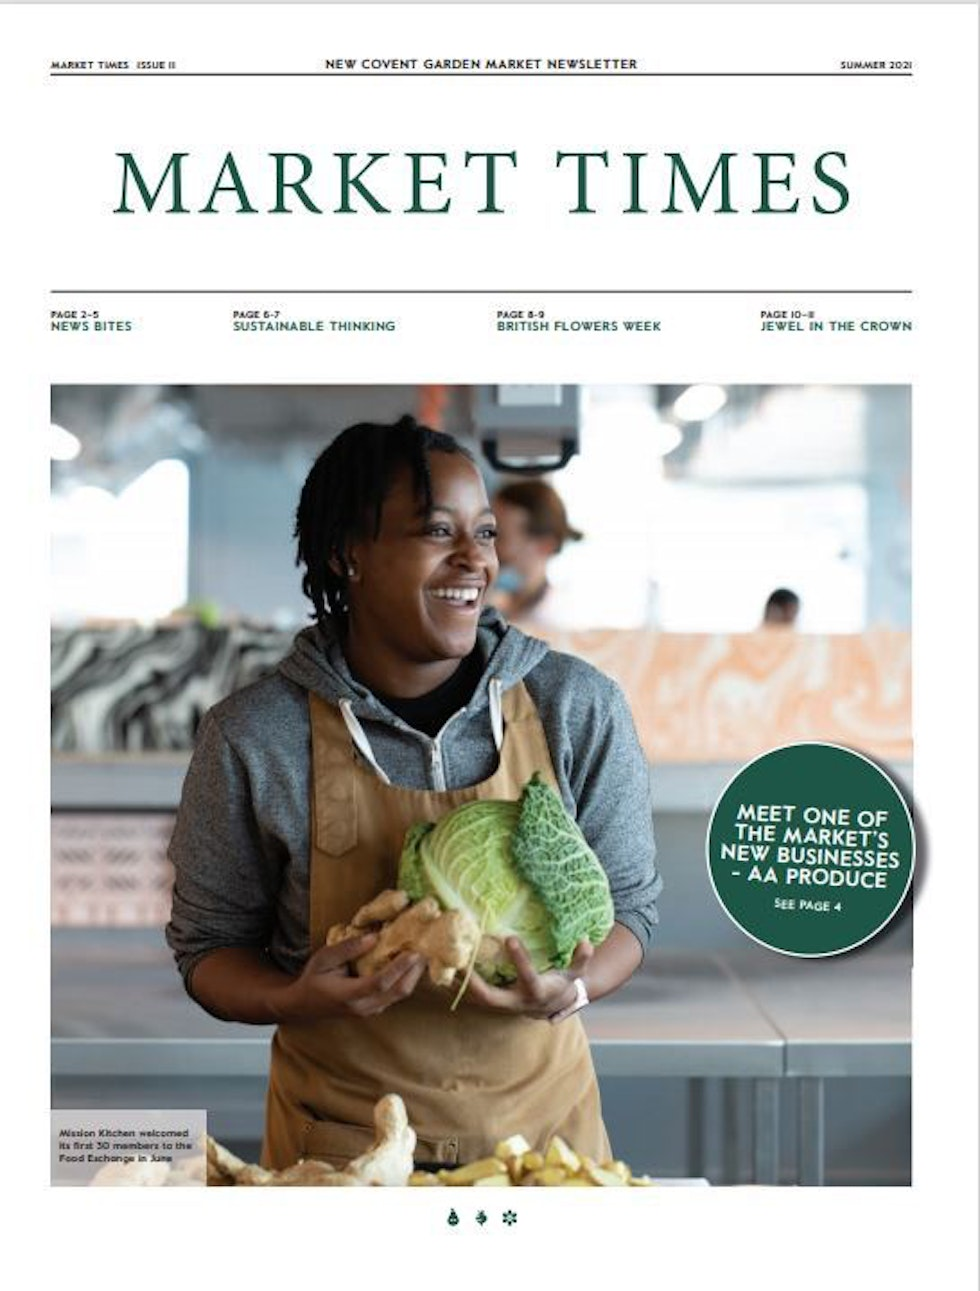 Summer 2021 issue of Market Times is out now